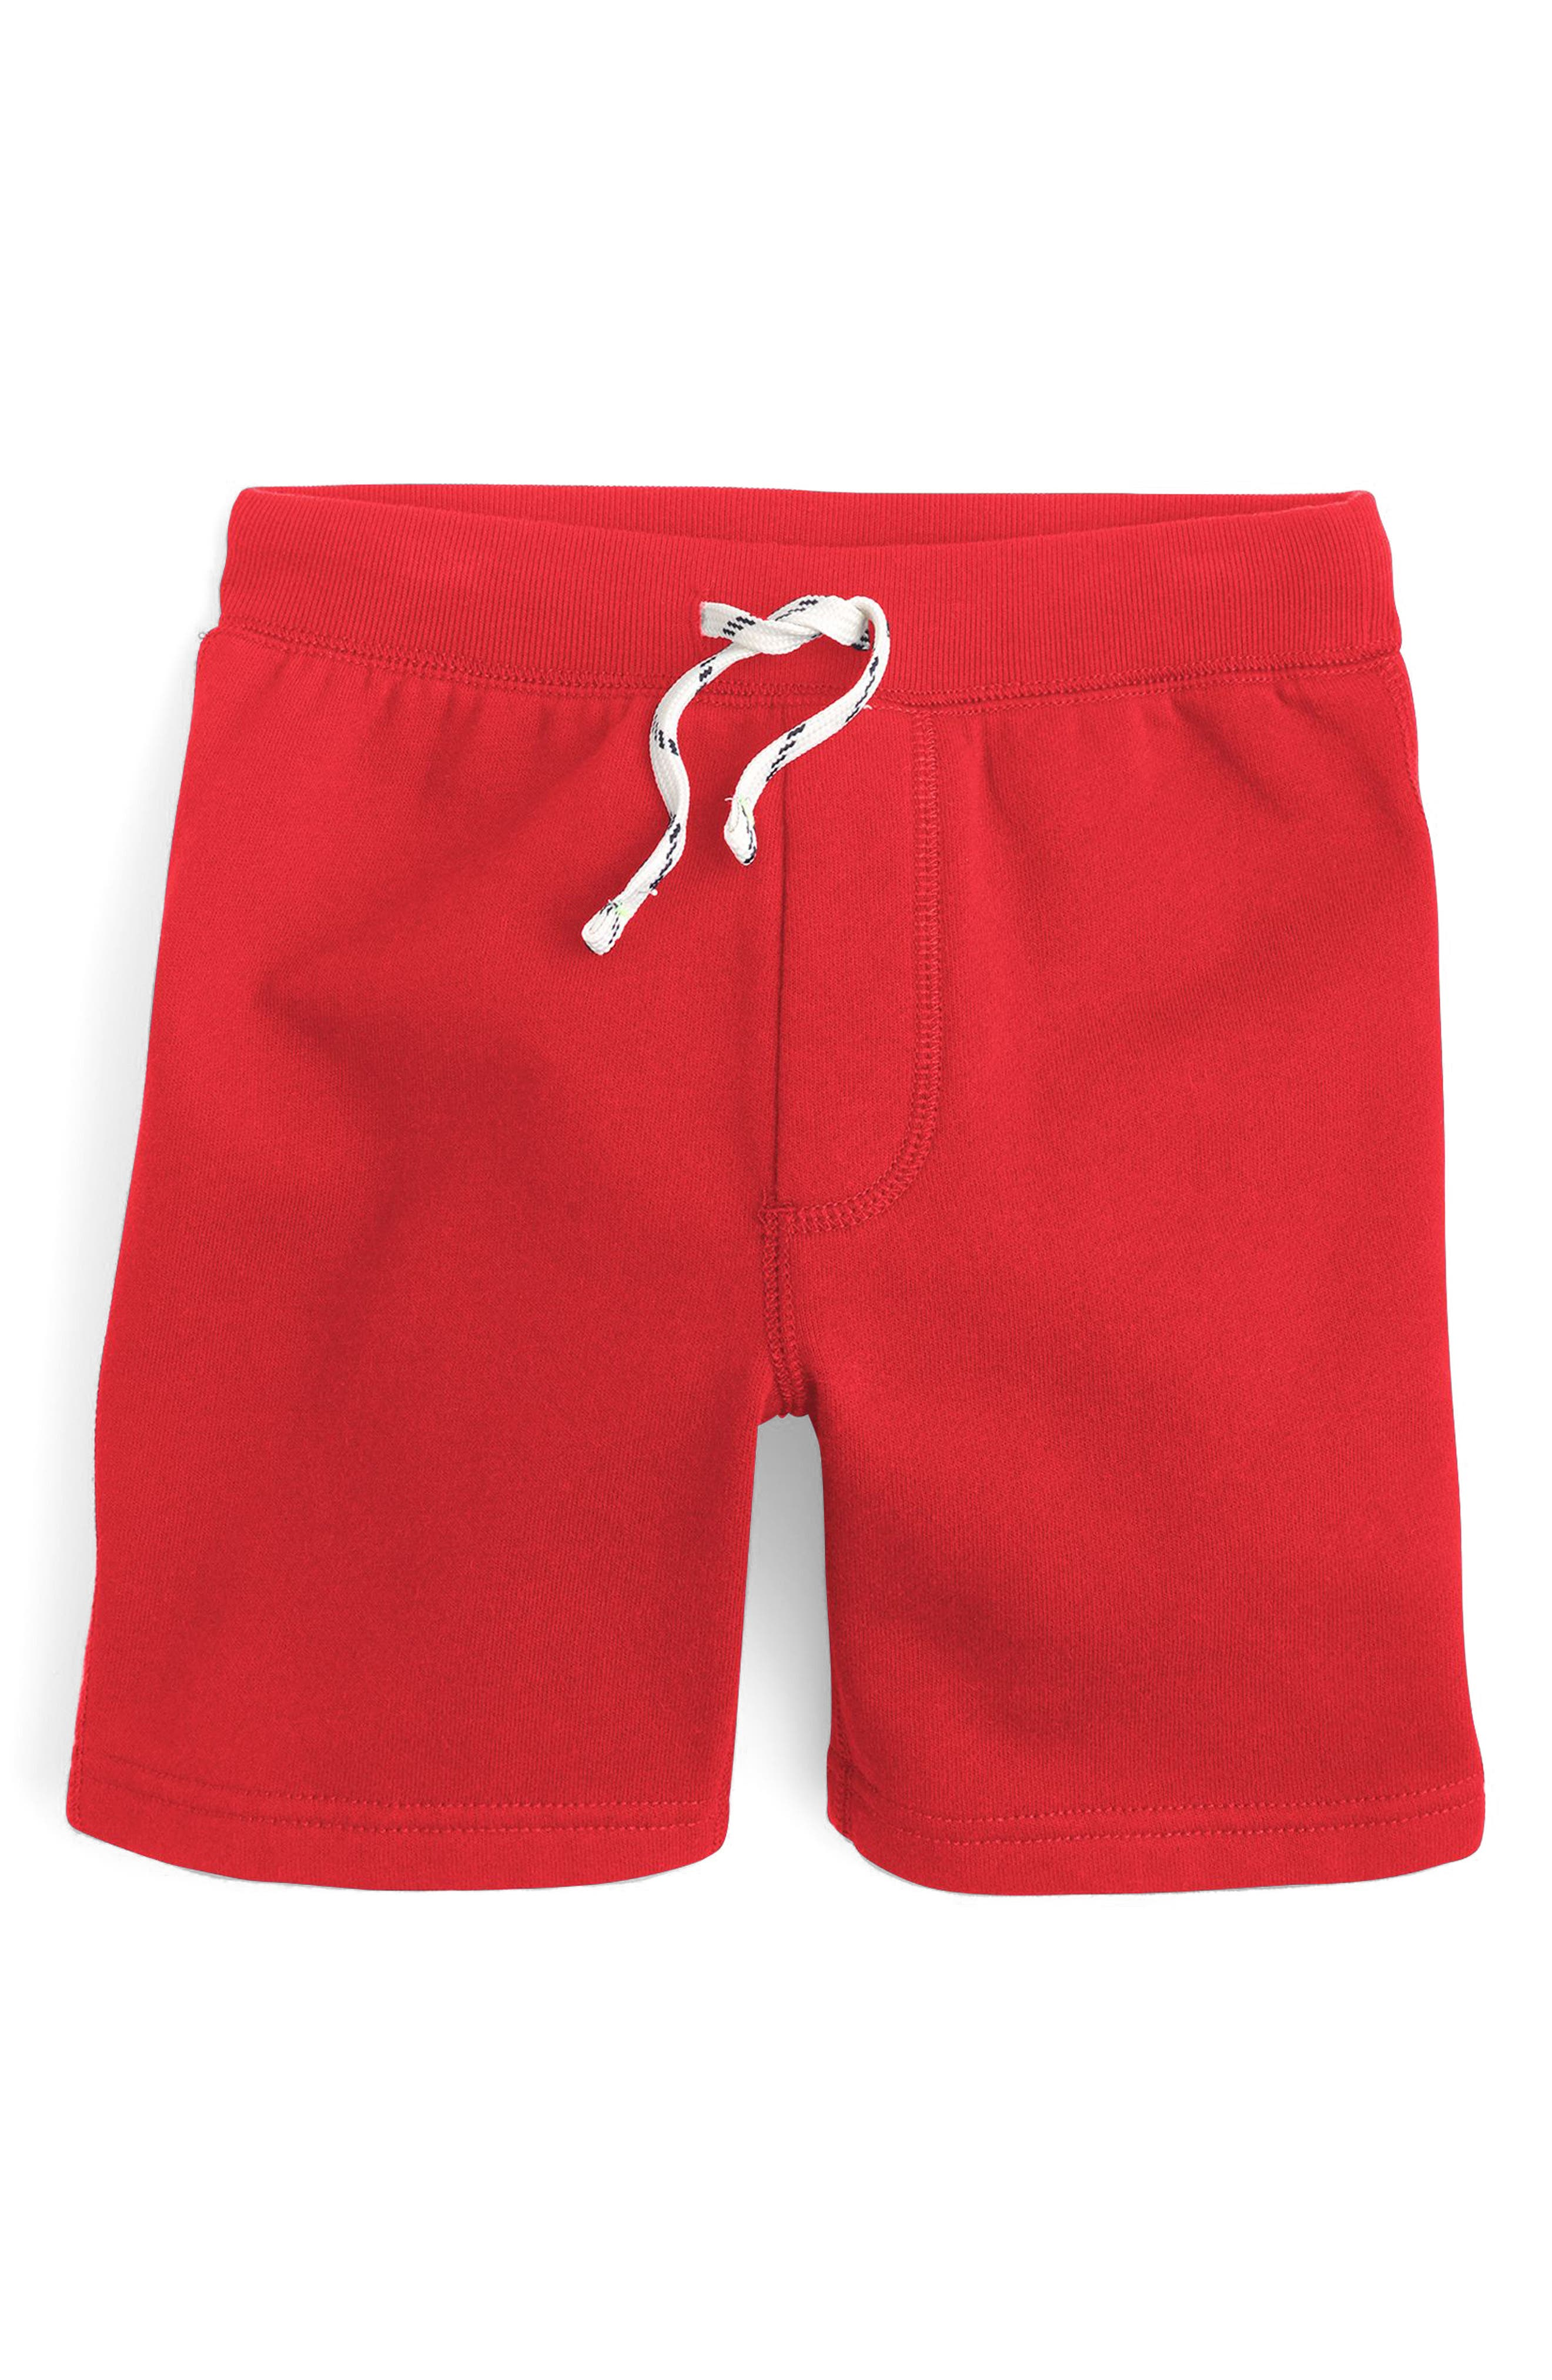 Main Image - crewcuts by J.Crew Classic Sweat Shorts (Toddler Boys, Little Boys & Big Boys)